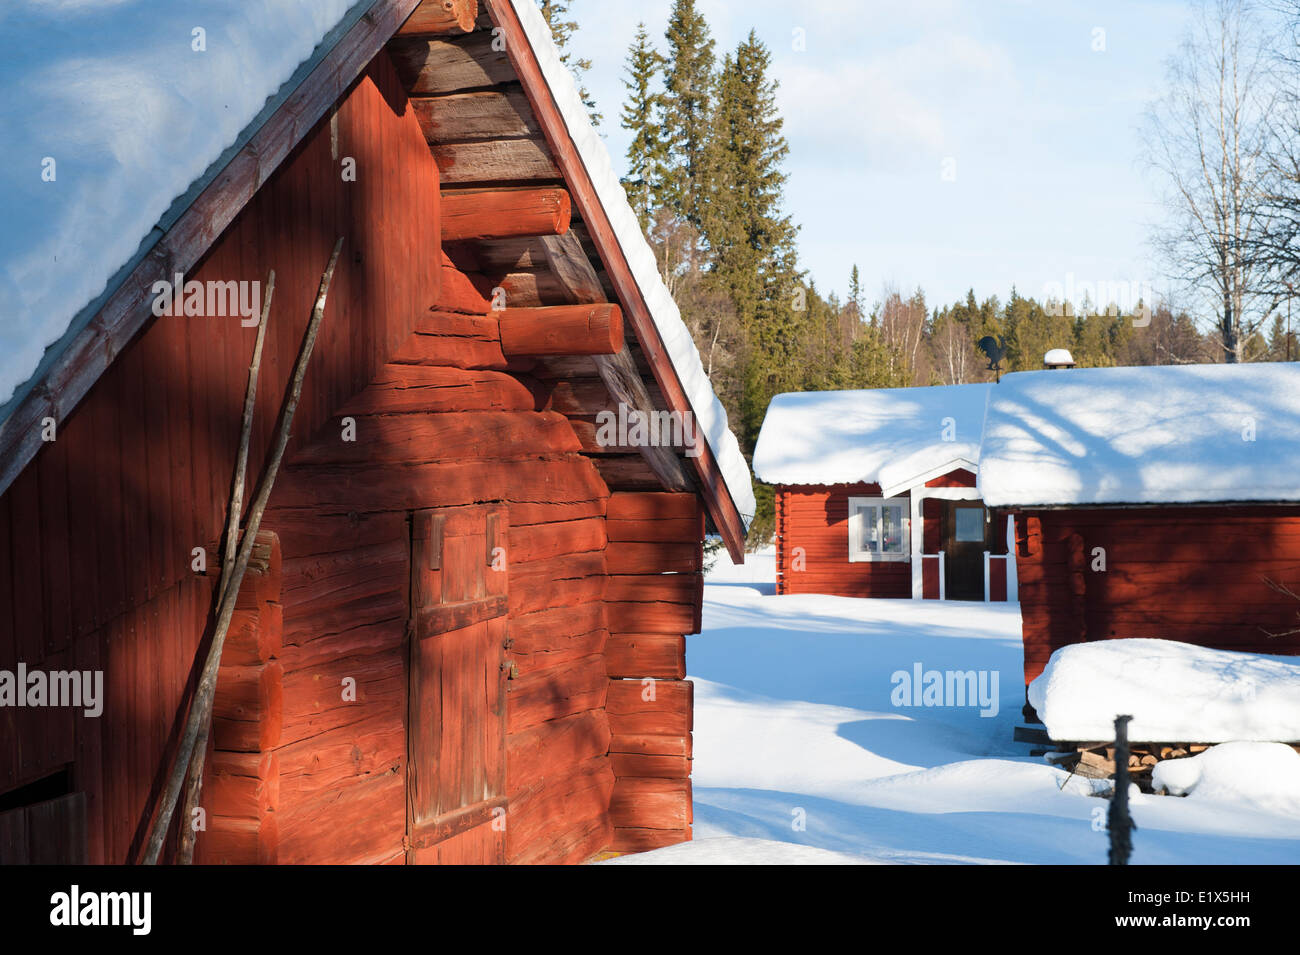 Barn and cottage in winter landscape. Dalarna, Sweden. - Stock Image